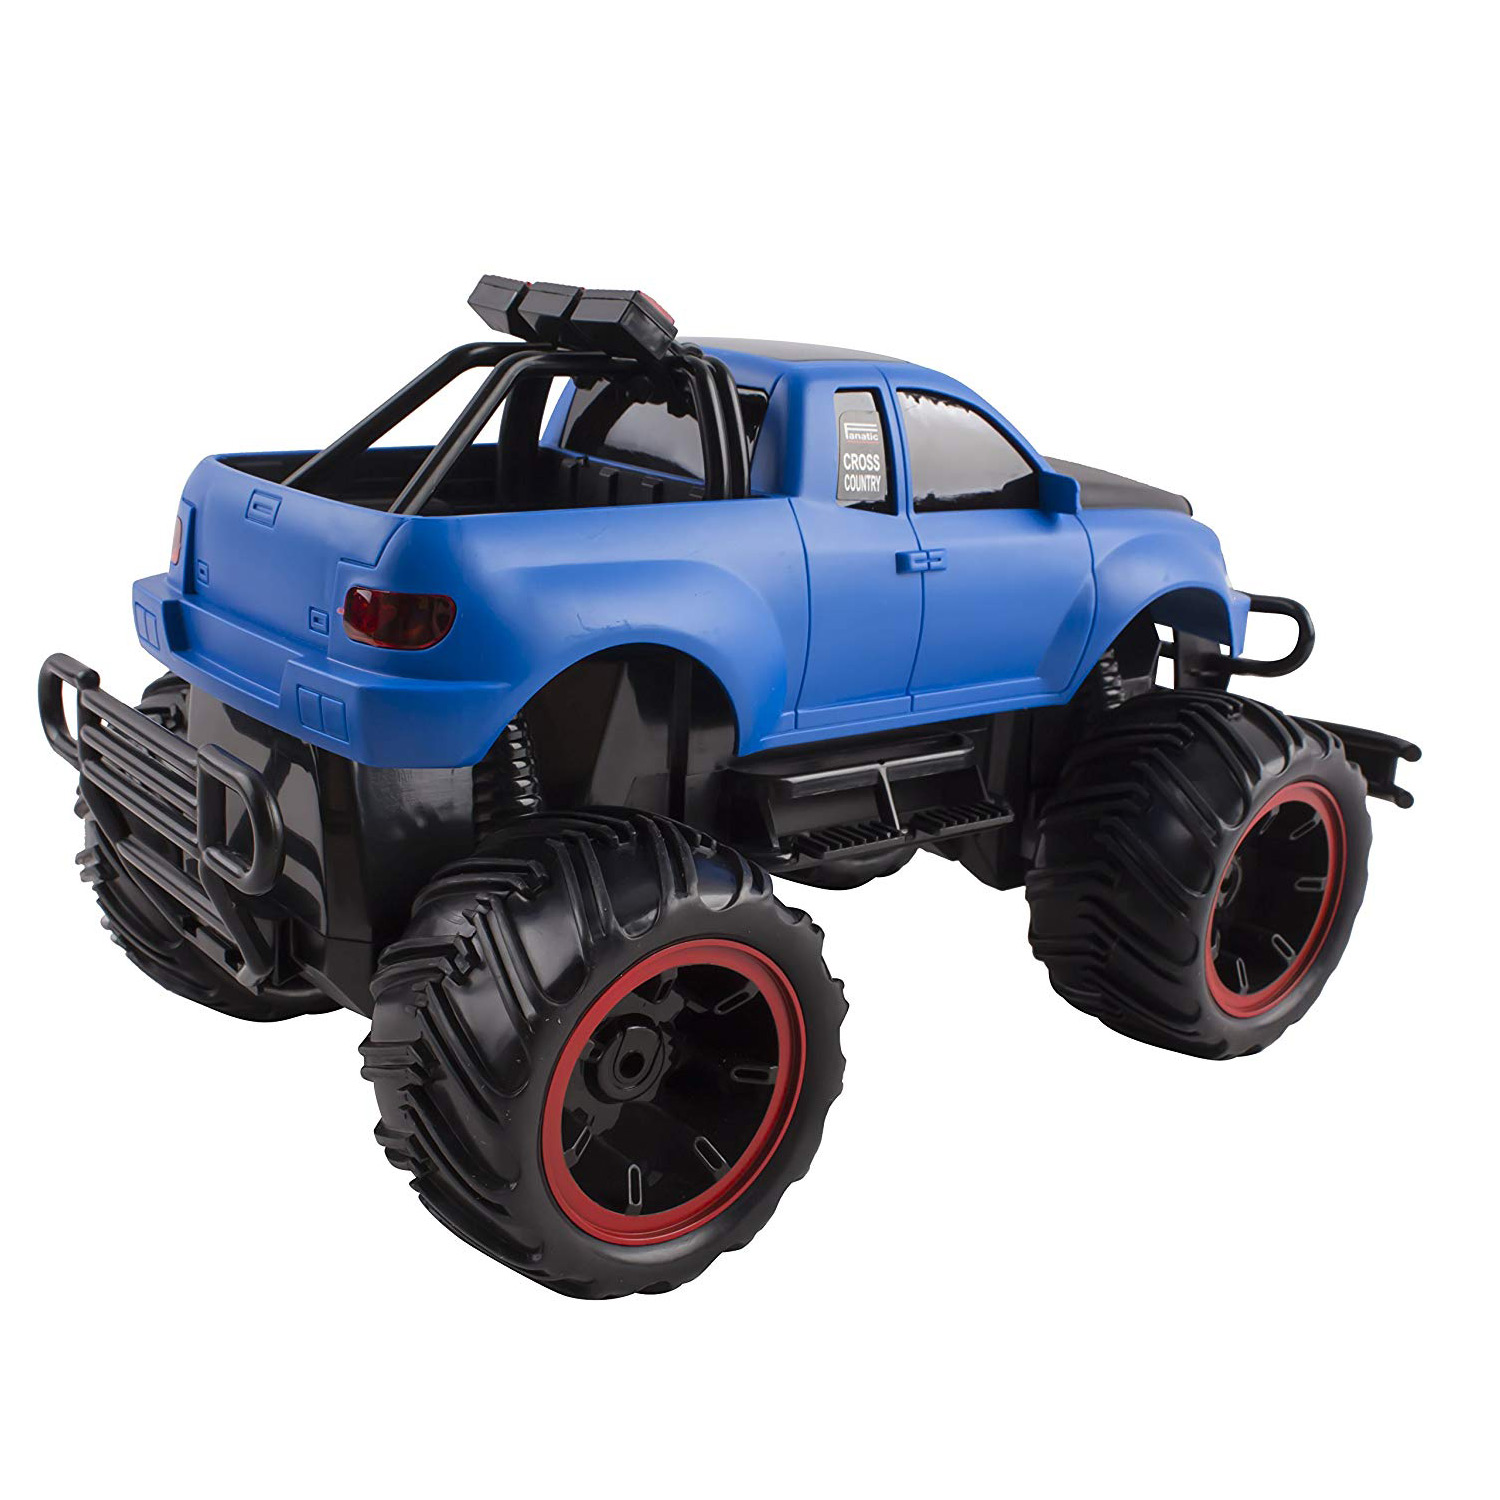 RC Monster Truck Buggy Remote Control Car RTR Electric Truggy Vehicle 116 Large Scale Working Suspension Perfect Kids Off-Road Race Toy Blue